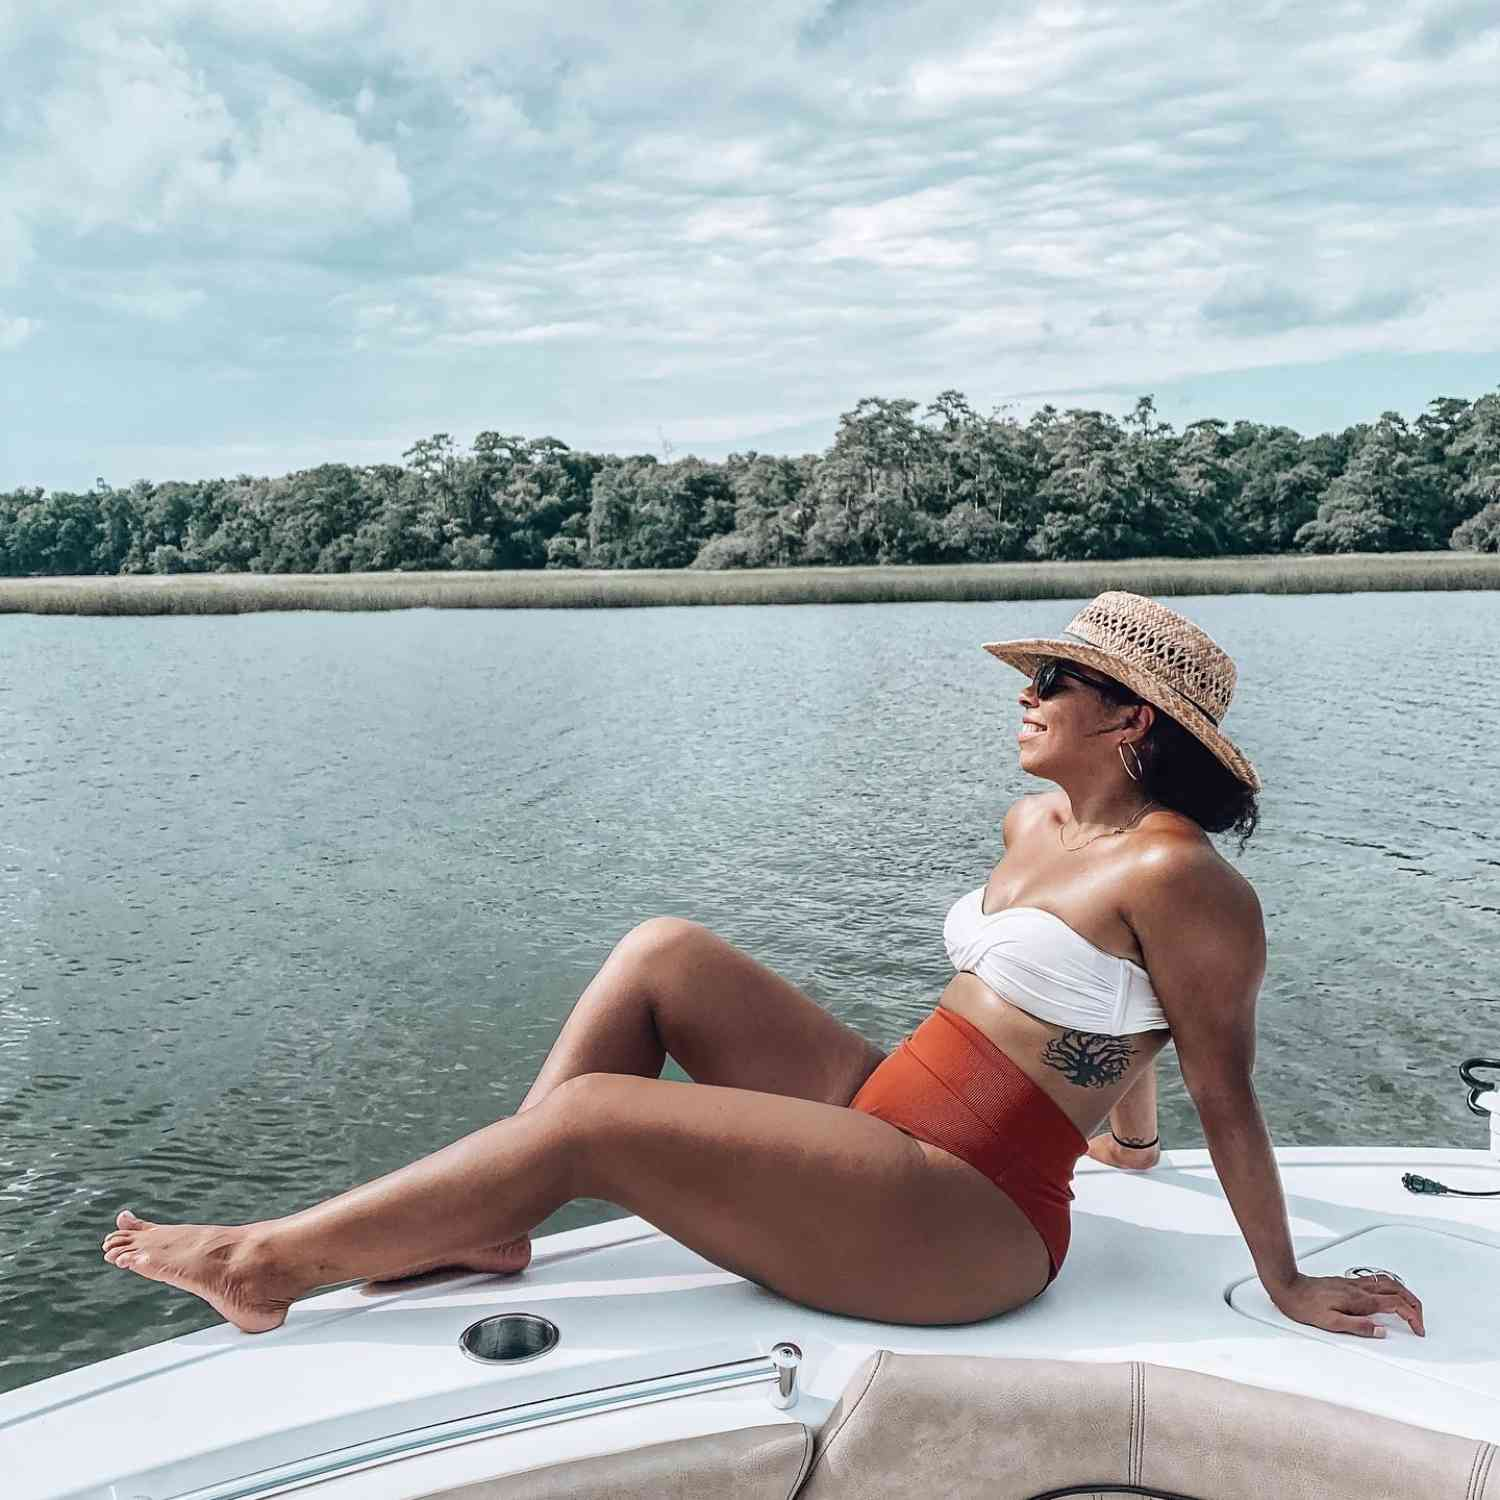 Title: Relaxation - On board their Sportsman Heritage 211 Center Console - Location: Charleston, SC. Participating in the Photo Contest #SportsmanAugust2020